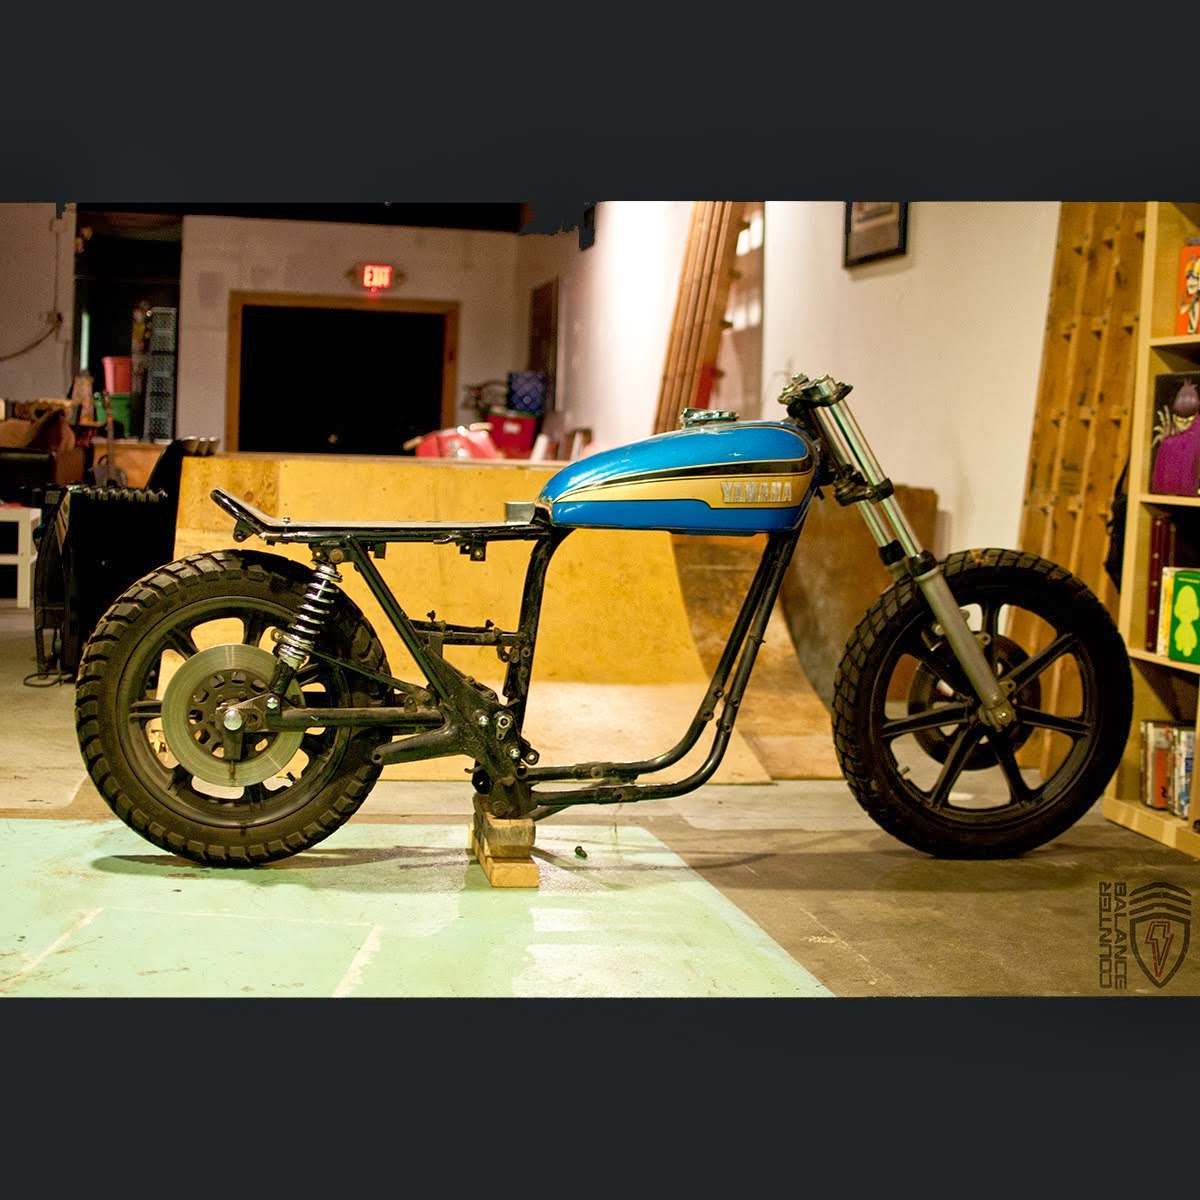 Bmw Xs: Counter Balance Motorcycles: XS 650 Street Tracker